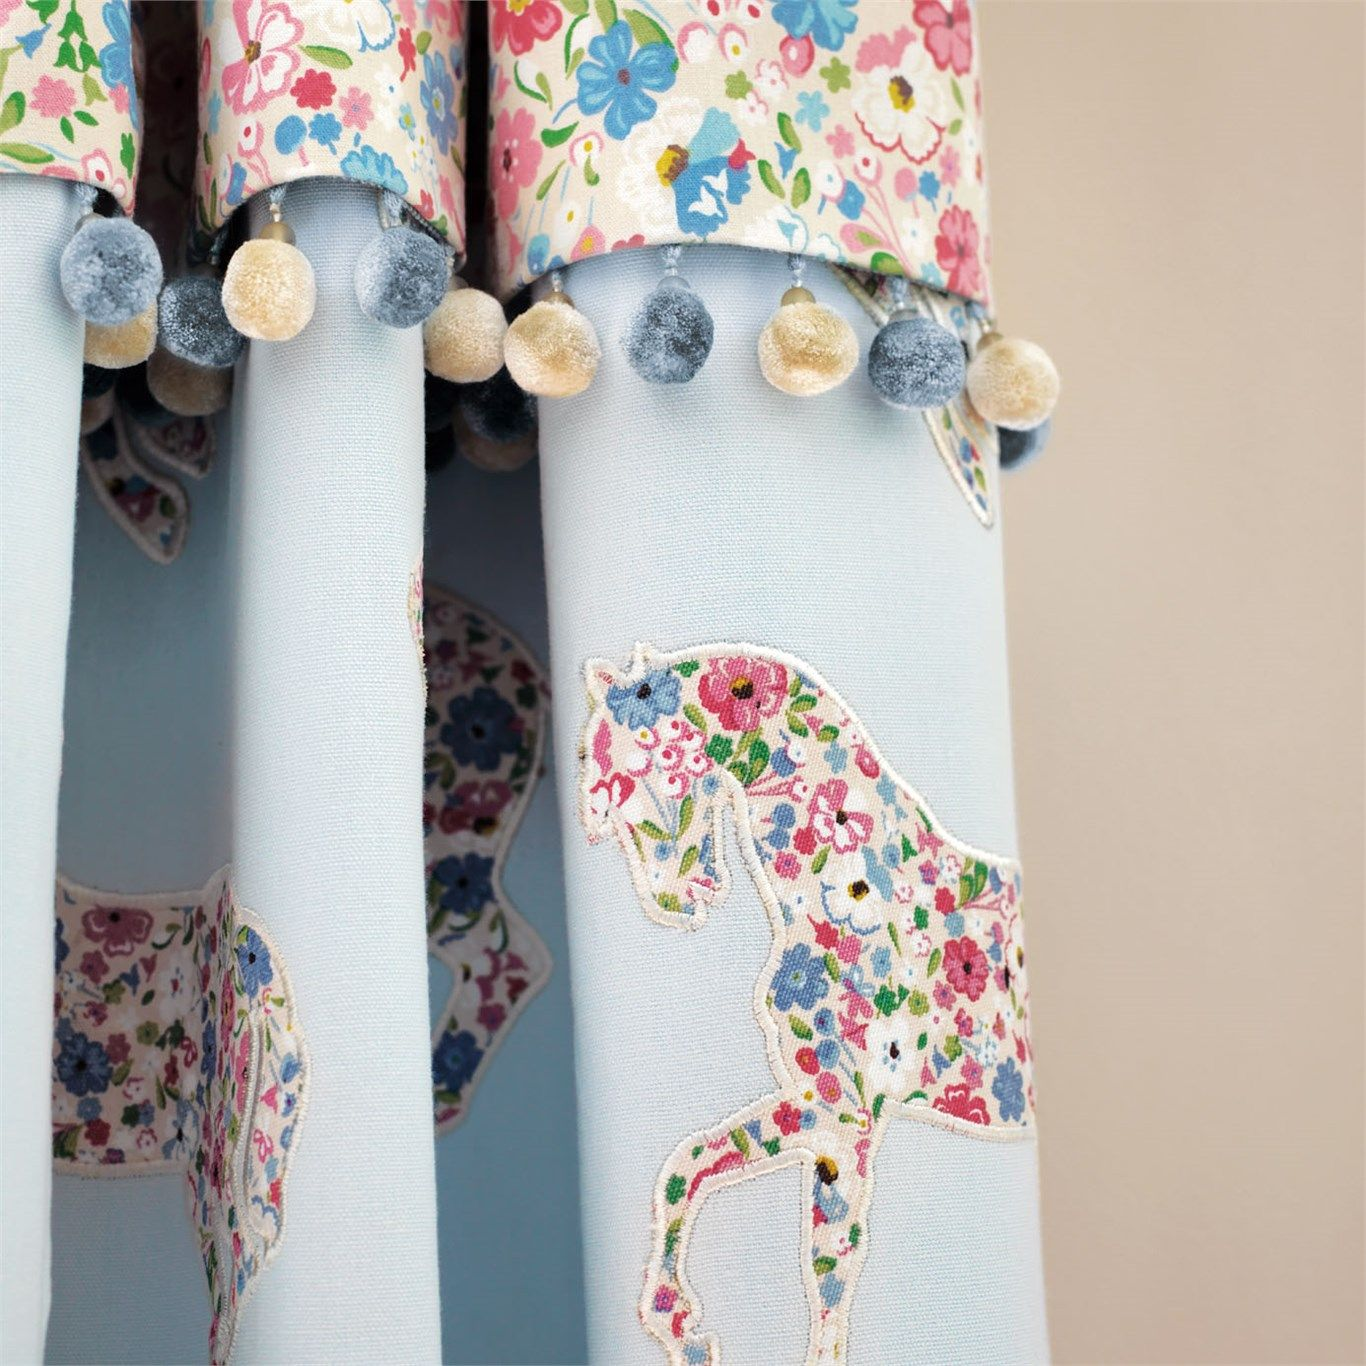 Pretty Ponies Fabric from Sanderson Abracazoo Collection  A charming  applique curtain fabric featuring silhouettes of prancing ponies inlaid  with the sky. Sanderson   Traditional to contemporary  high quality designer